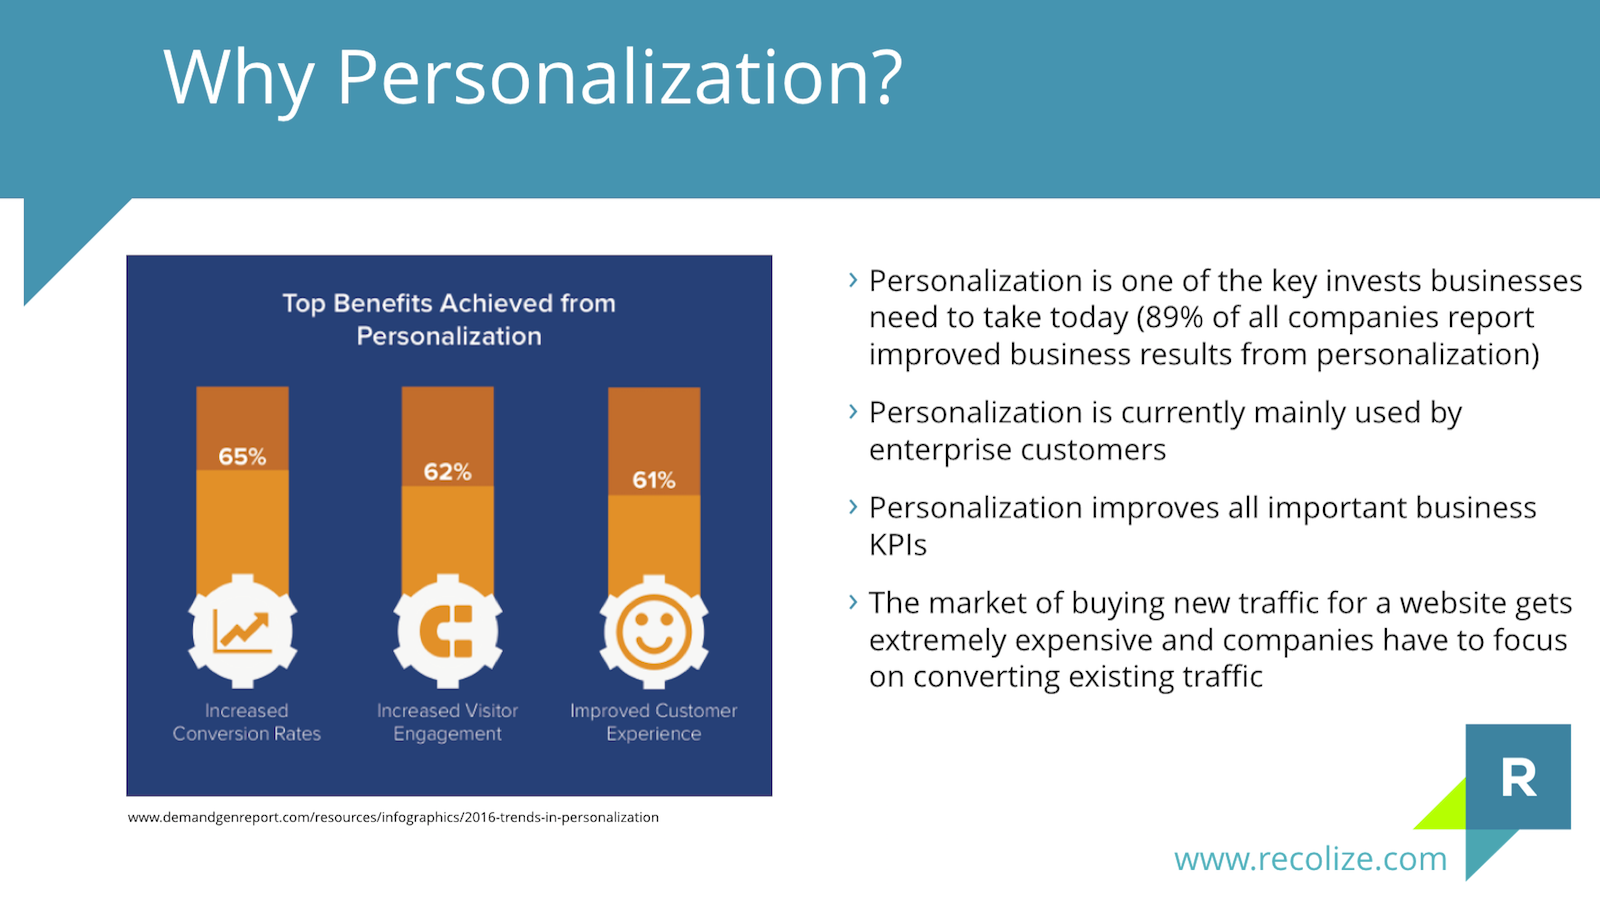 Why Personalization with Recolize?